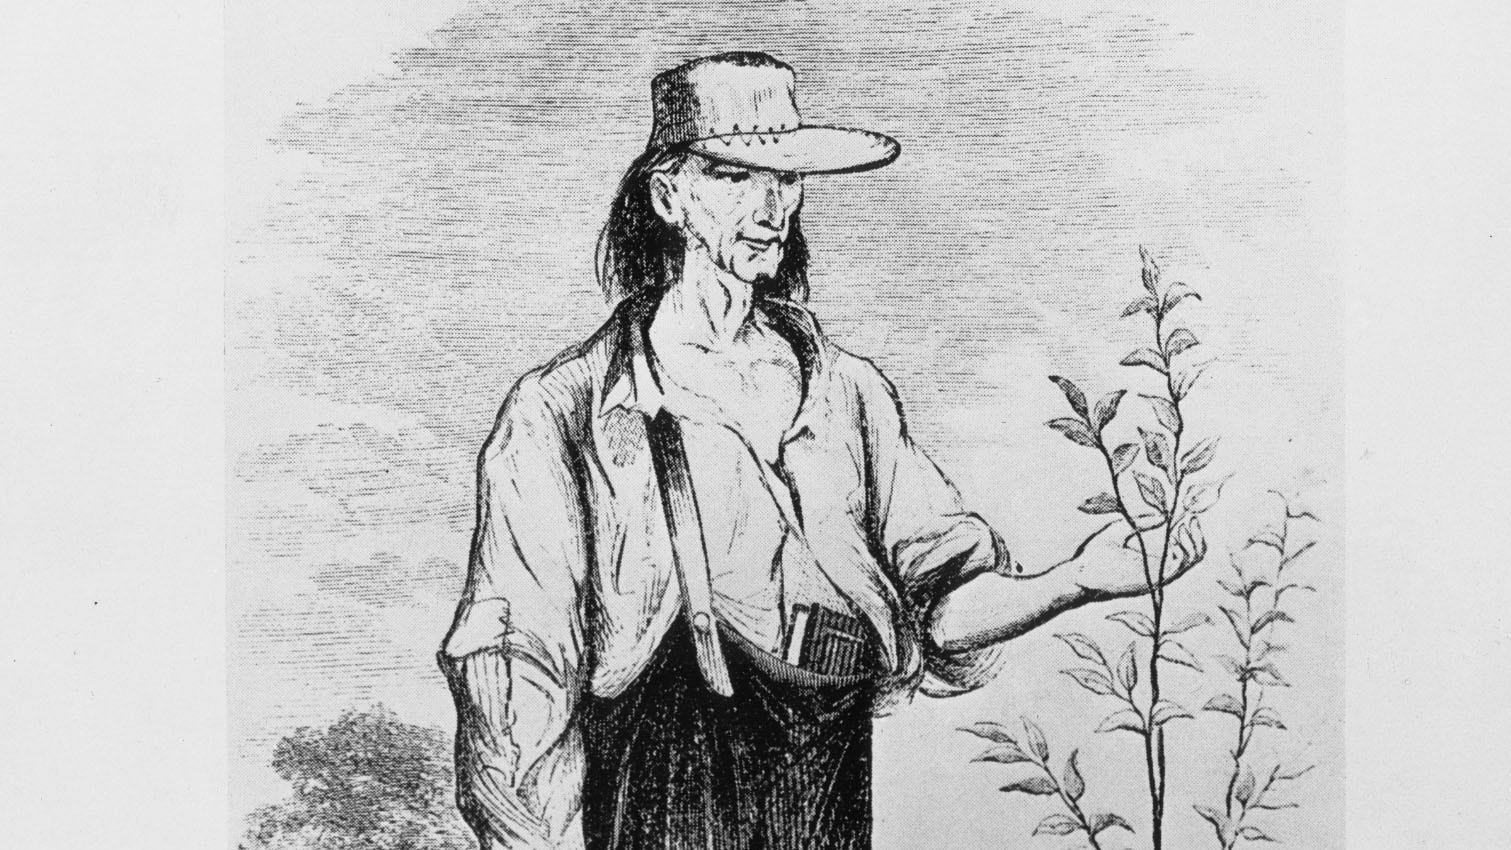 Earliest drawing of Johnny Appleseed